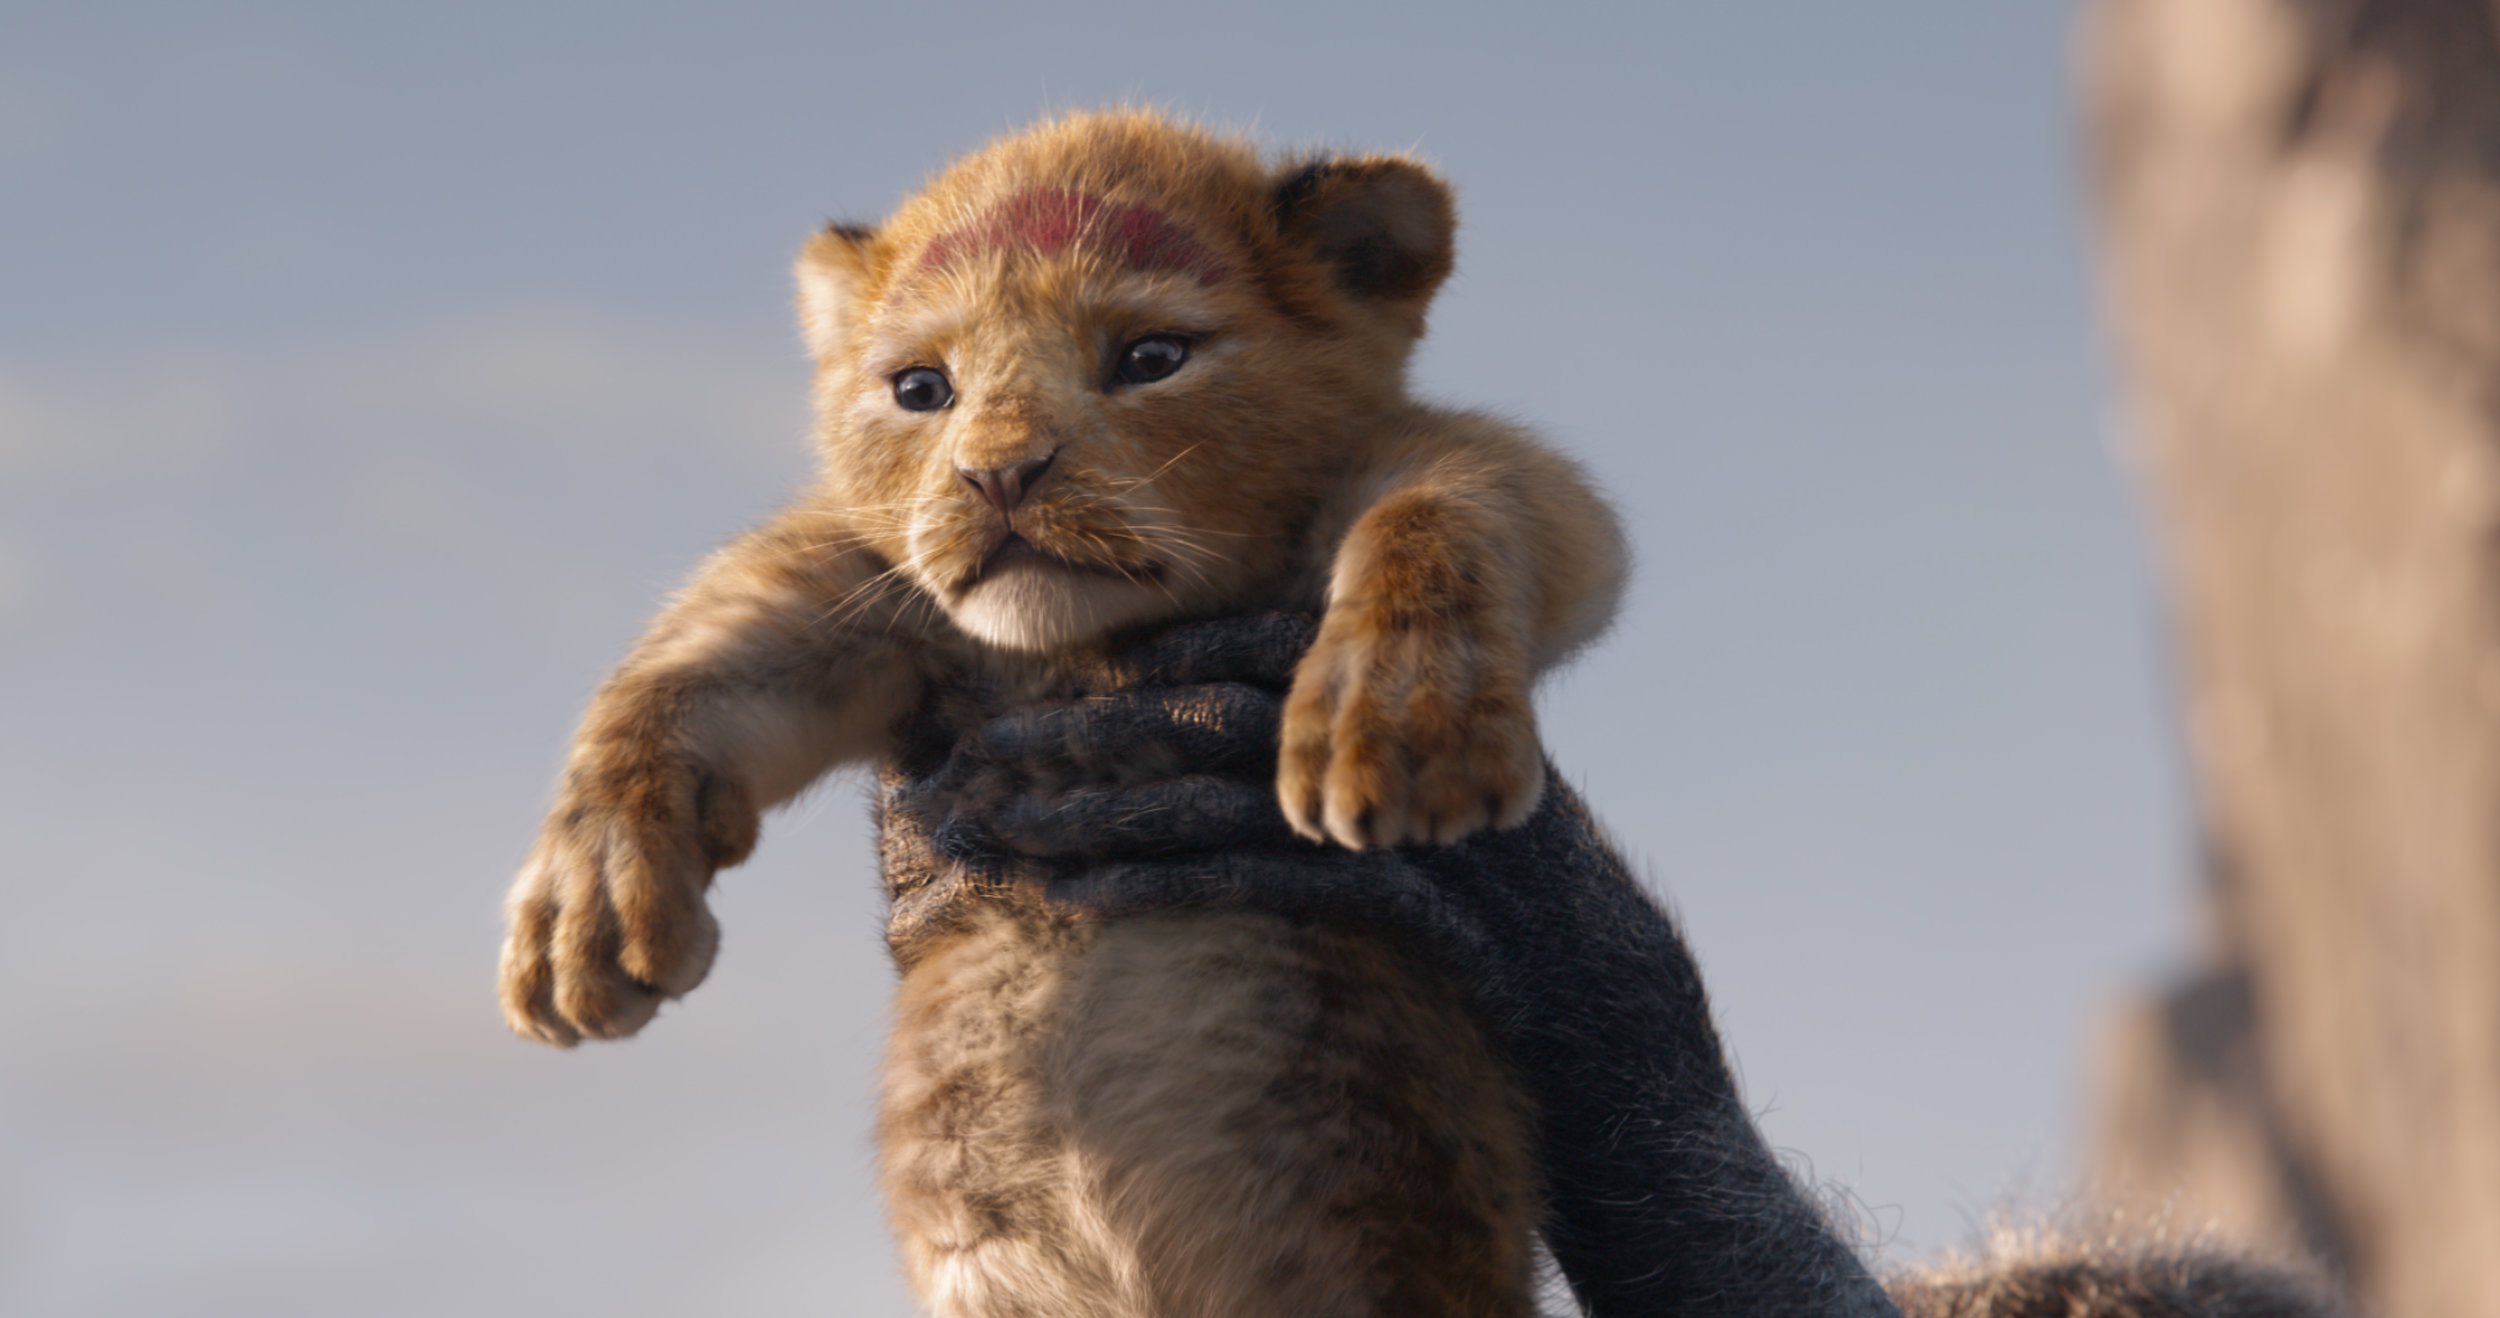 """The young cub Simba is presented to the animals of the savanna in Disney's computer-animated version of """"The Lion King."""" (Image courtesy Walt Disney Pictures.)"""